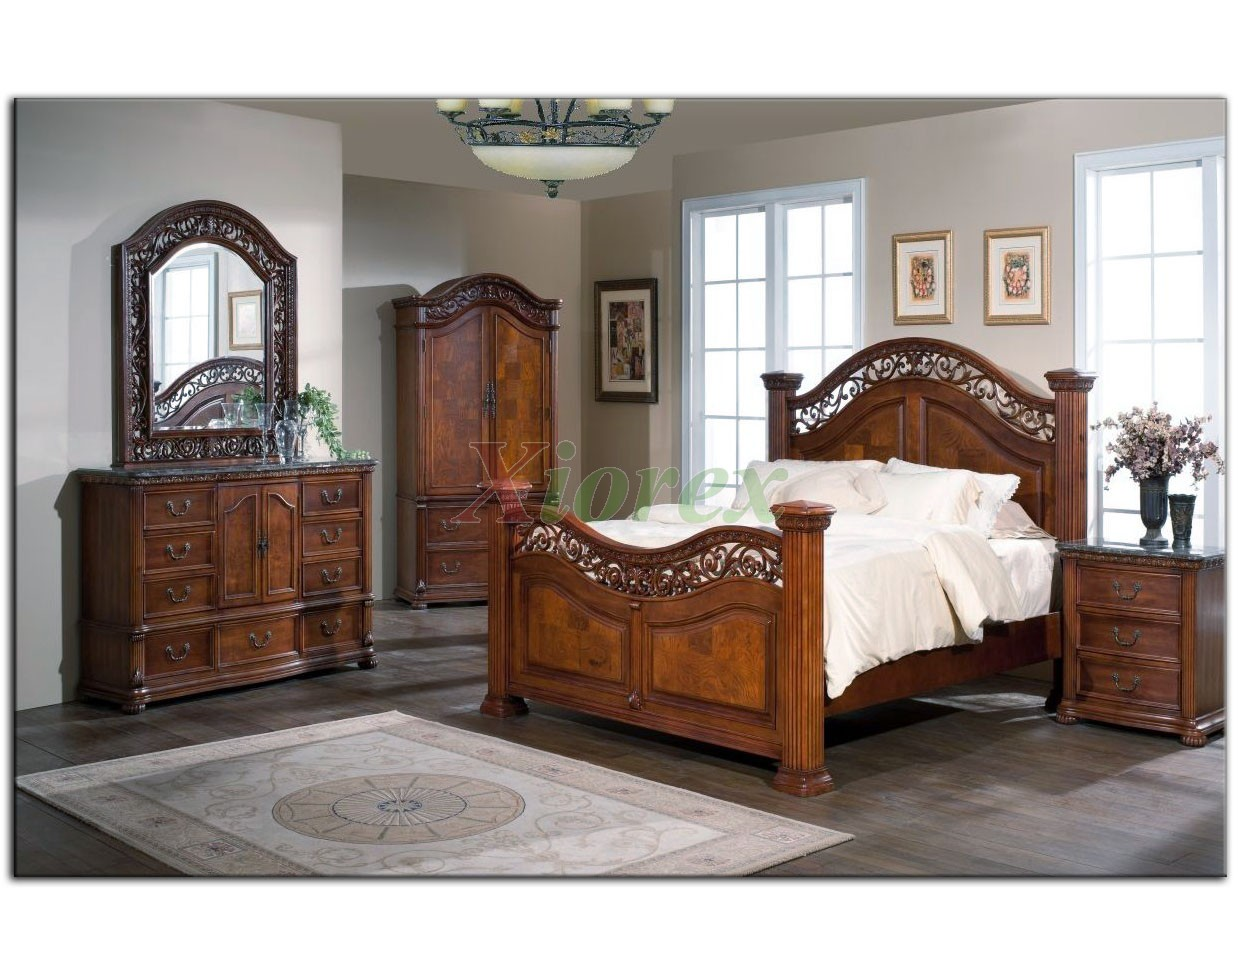 Poster bedroom furniture set 114 xiorex for 3 bedroom set